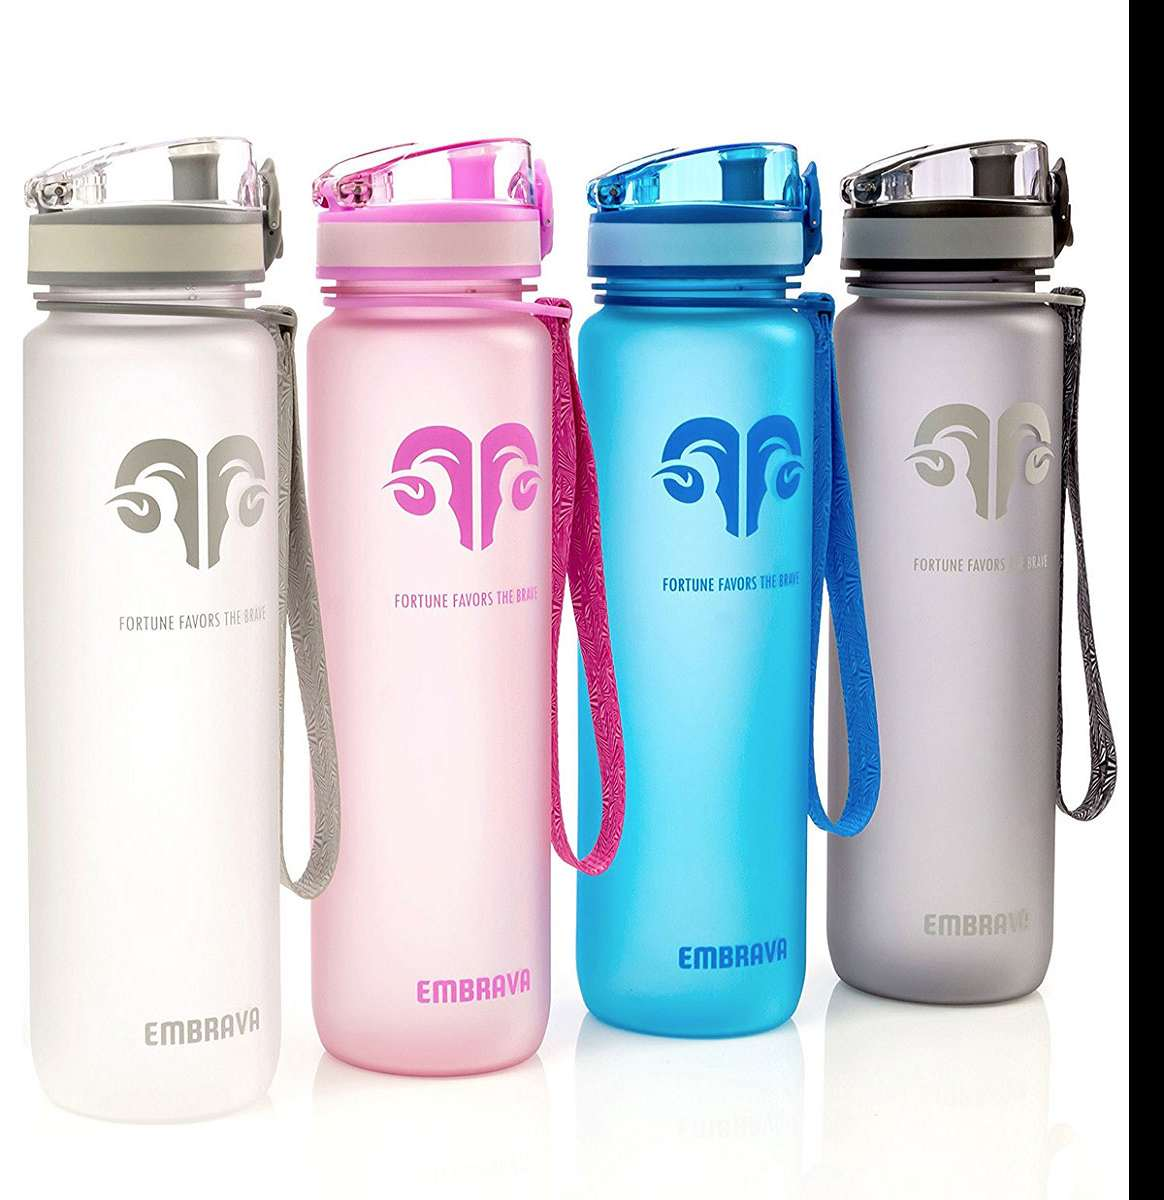 Embrava Best Ever Water Bottle Dudeiwantthat Com